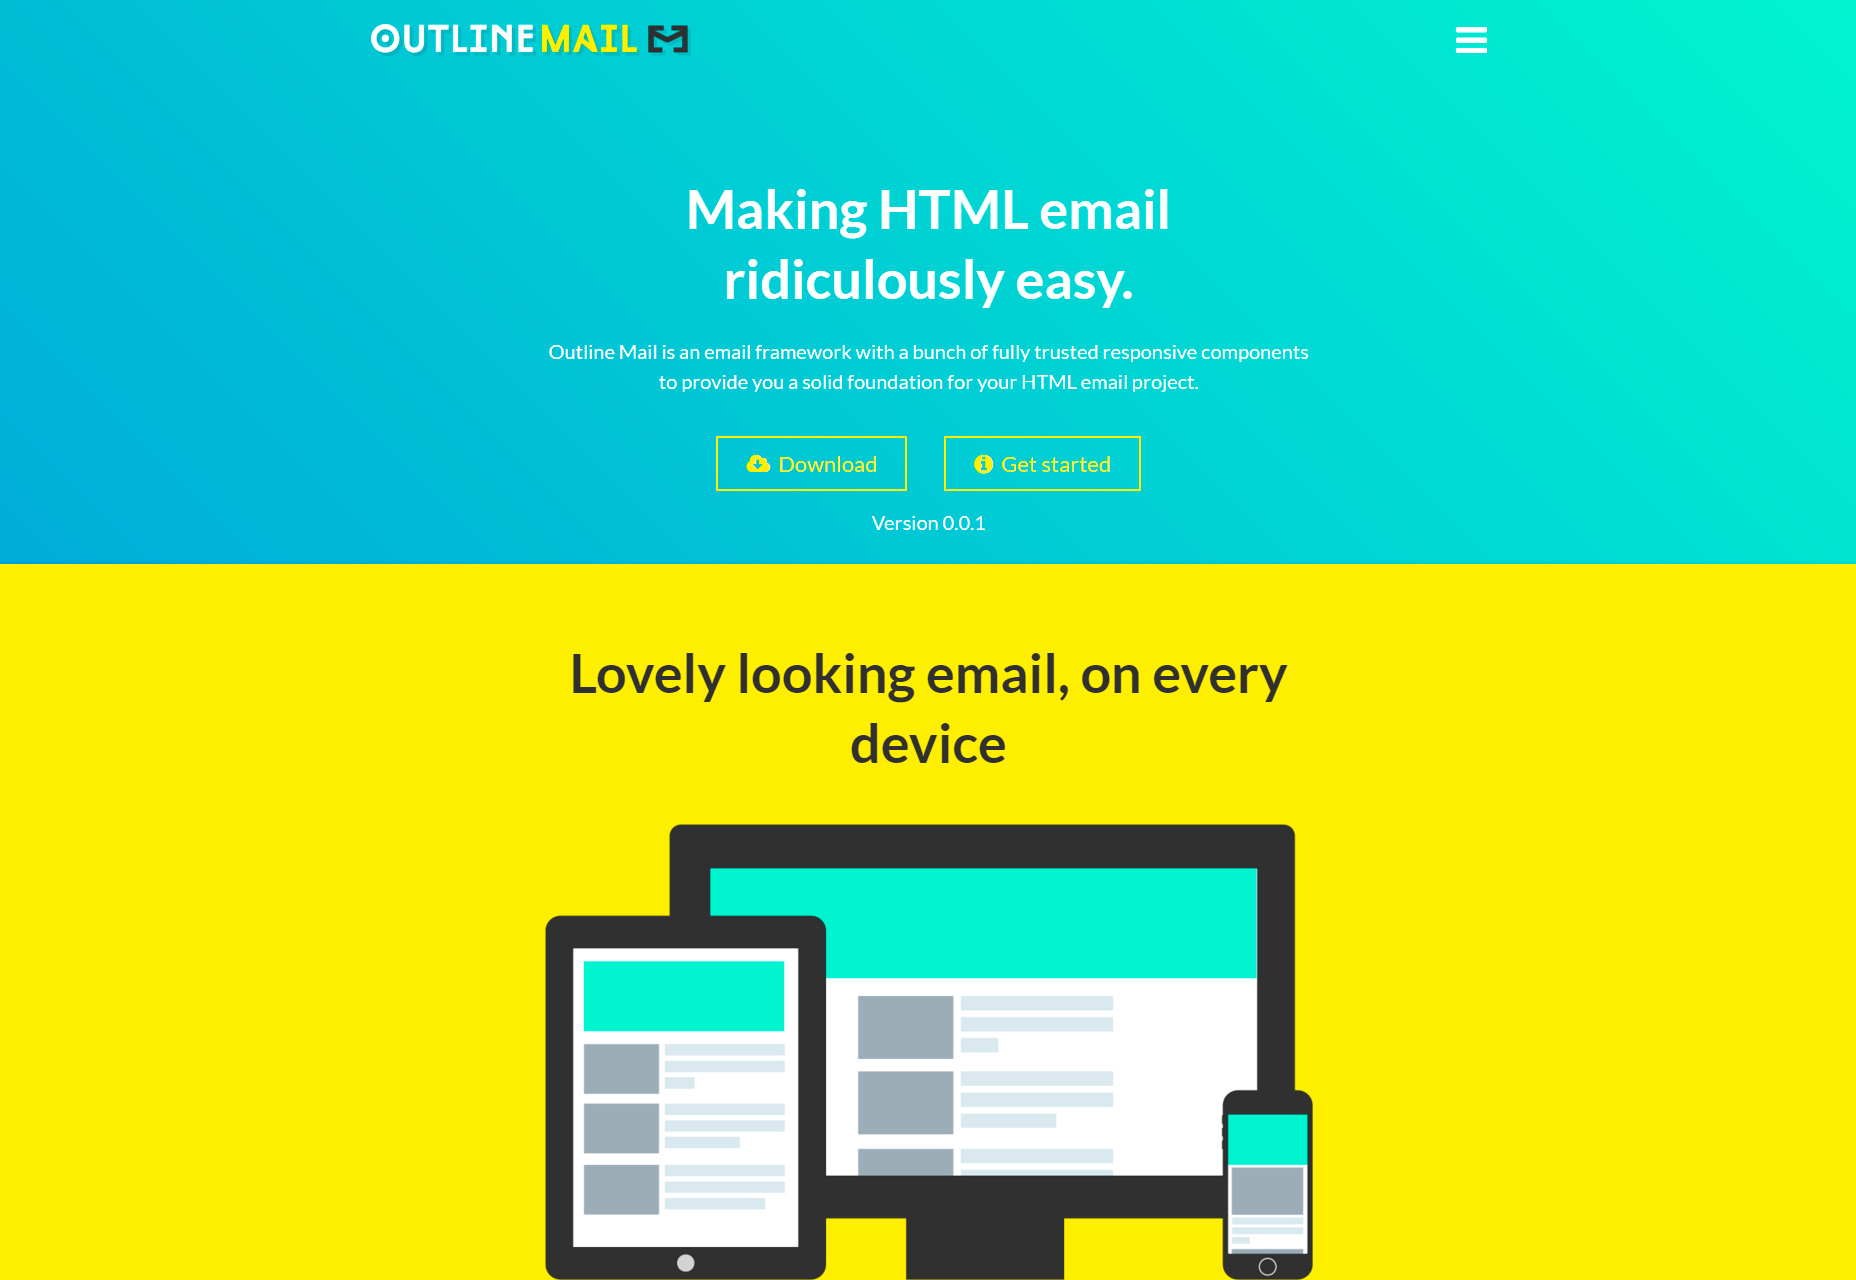 Outline Mail: Easy HTML Email Templates